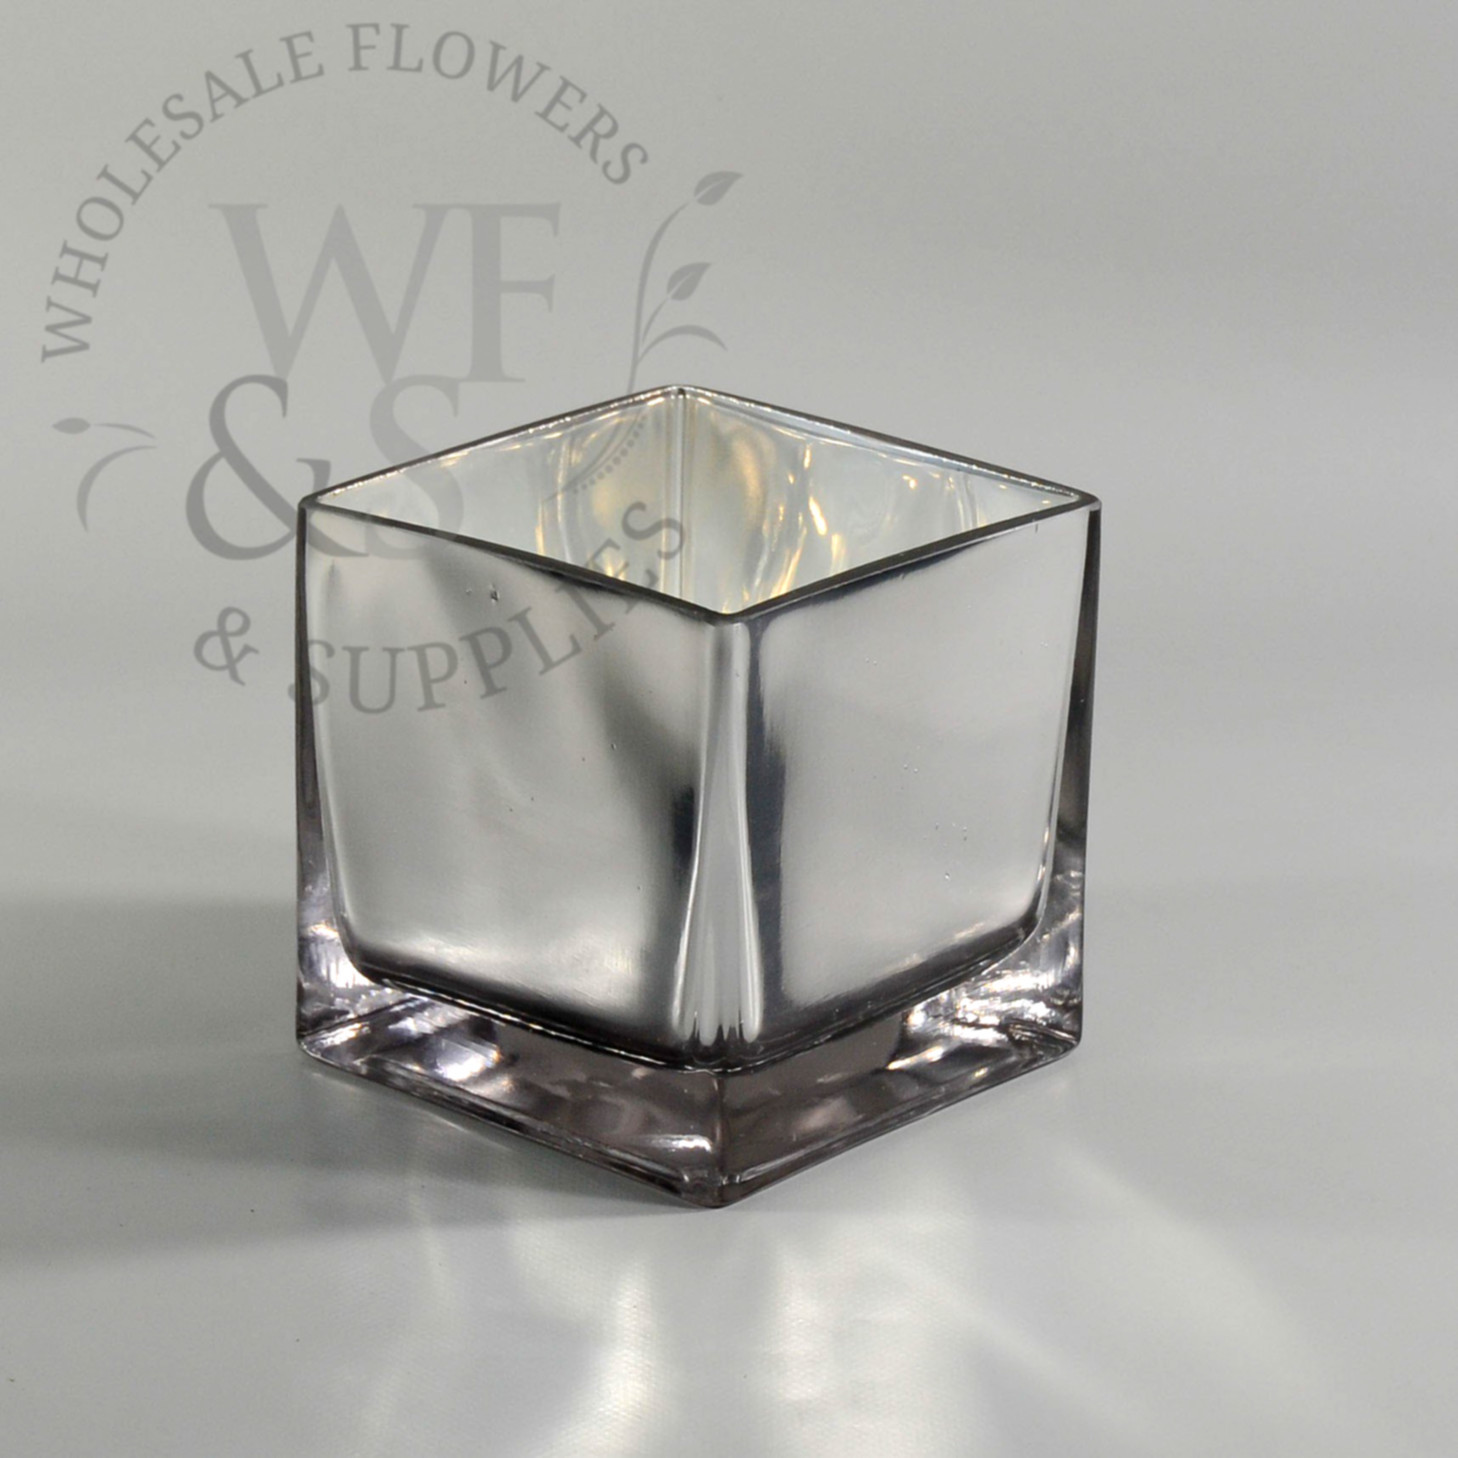 5 x 8 cylinder vase of square glass dish garden 4x 8 possible provision pinterest intended for square glass dish garden 4x 8 possible provision pinterest pictures